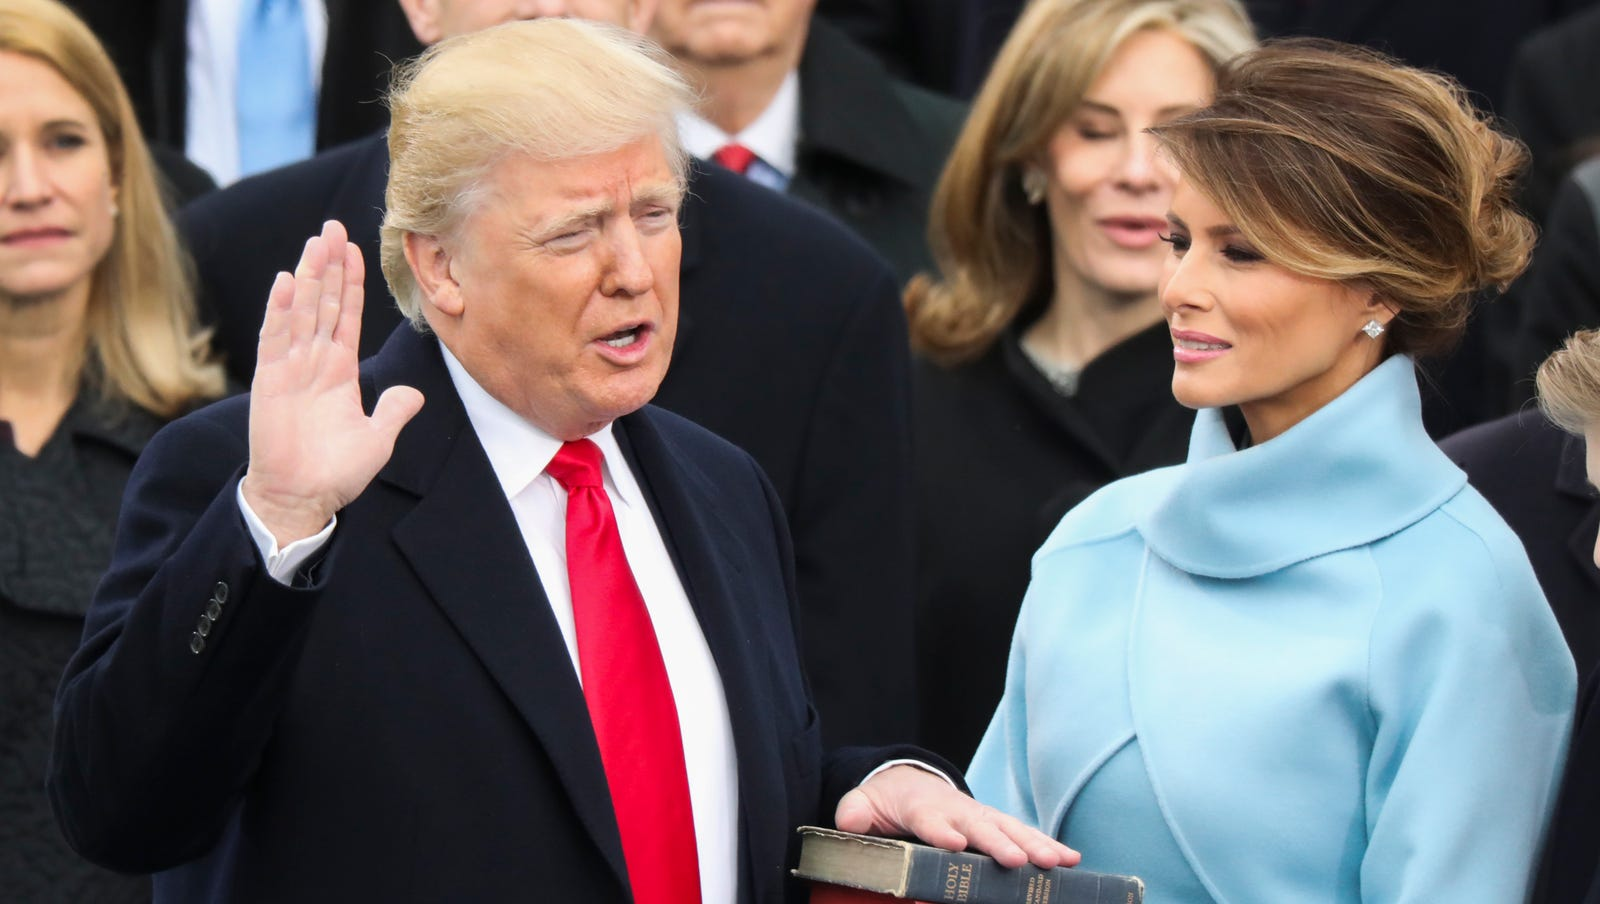 Federal prosecutors in New York subpoena Trump's inaugural committee for documents